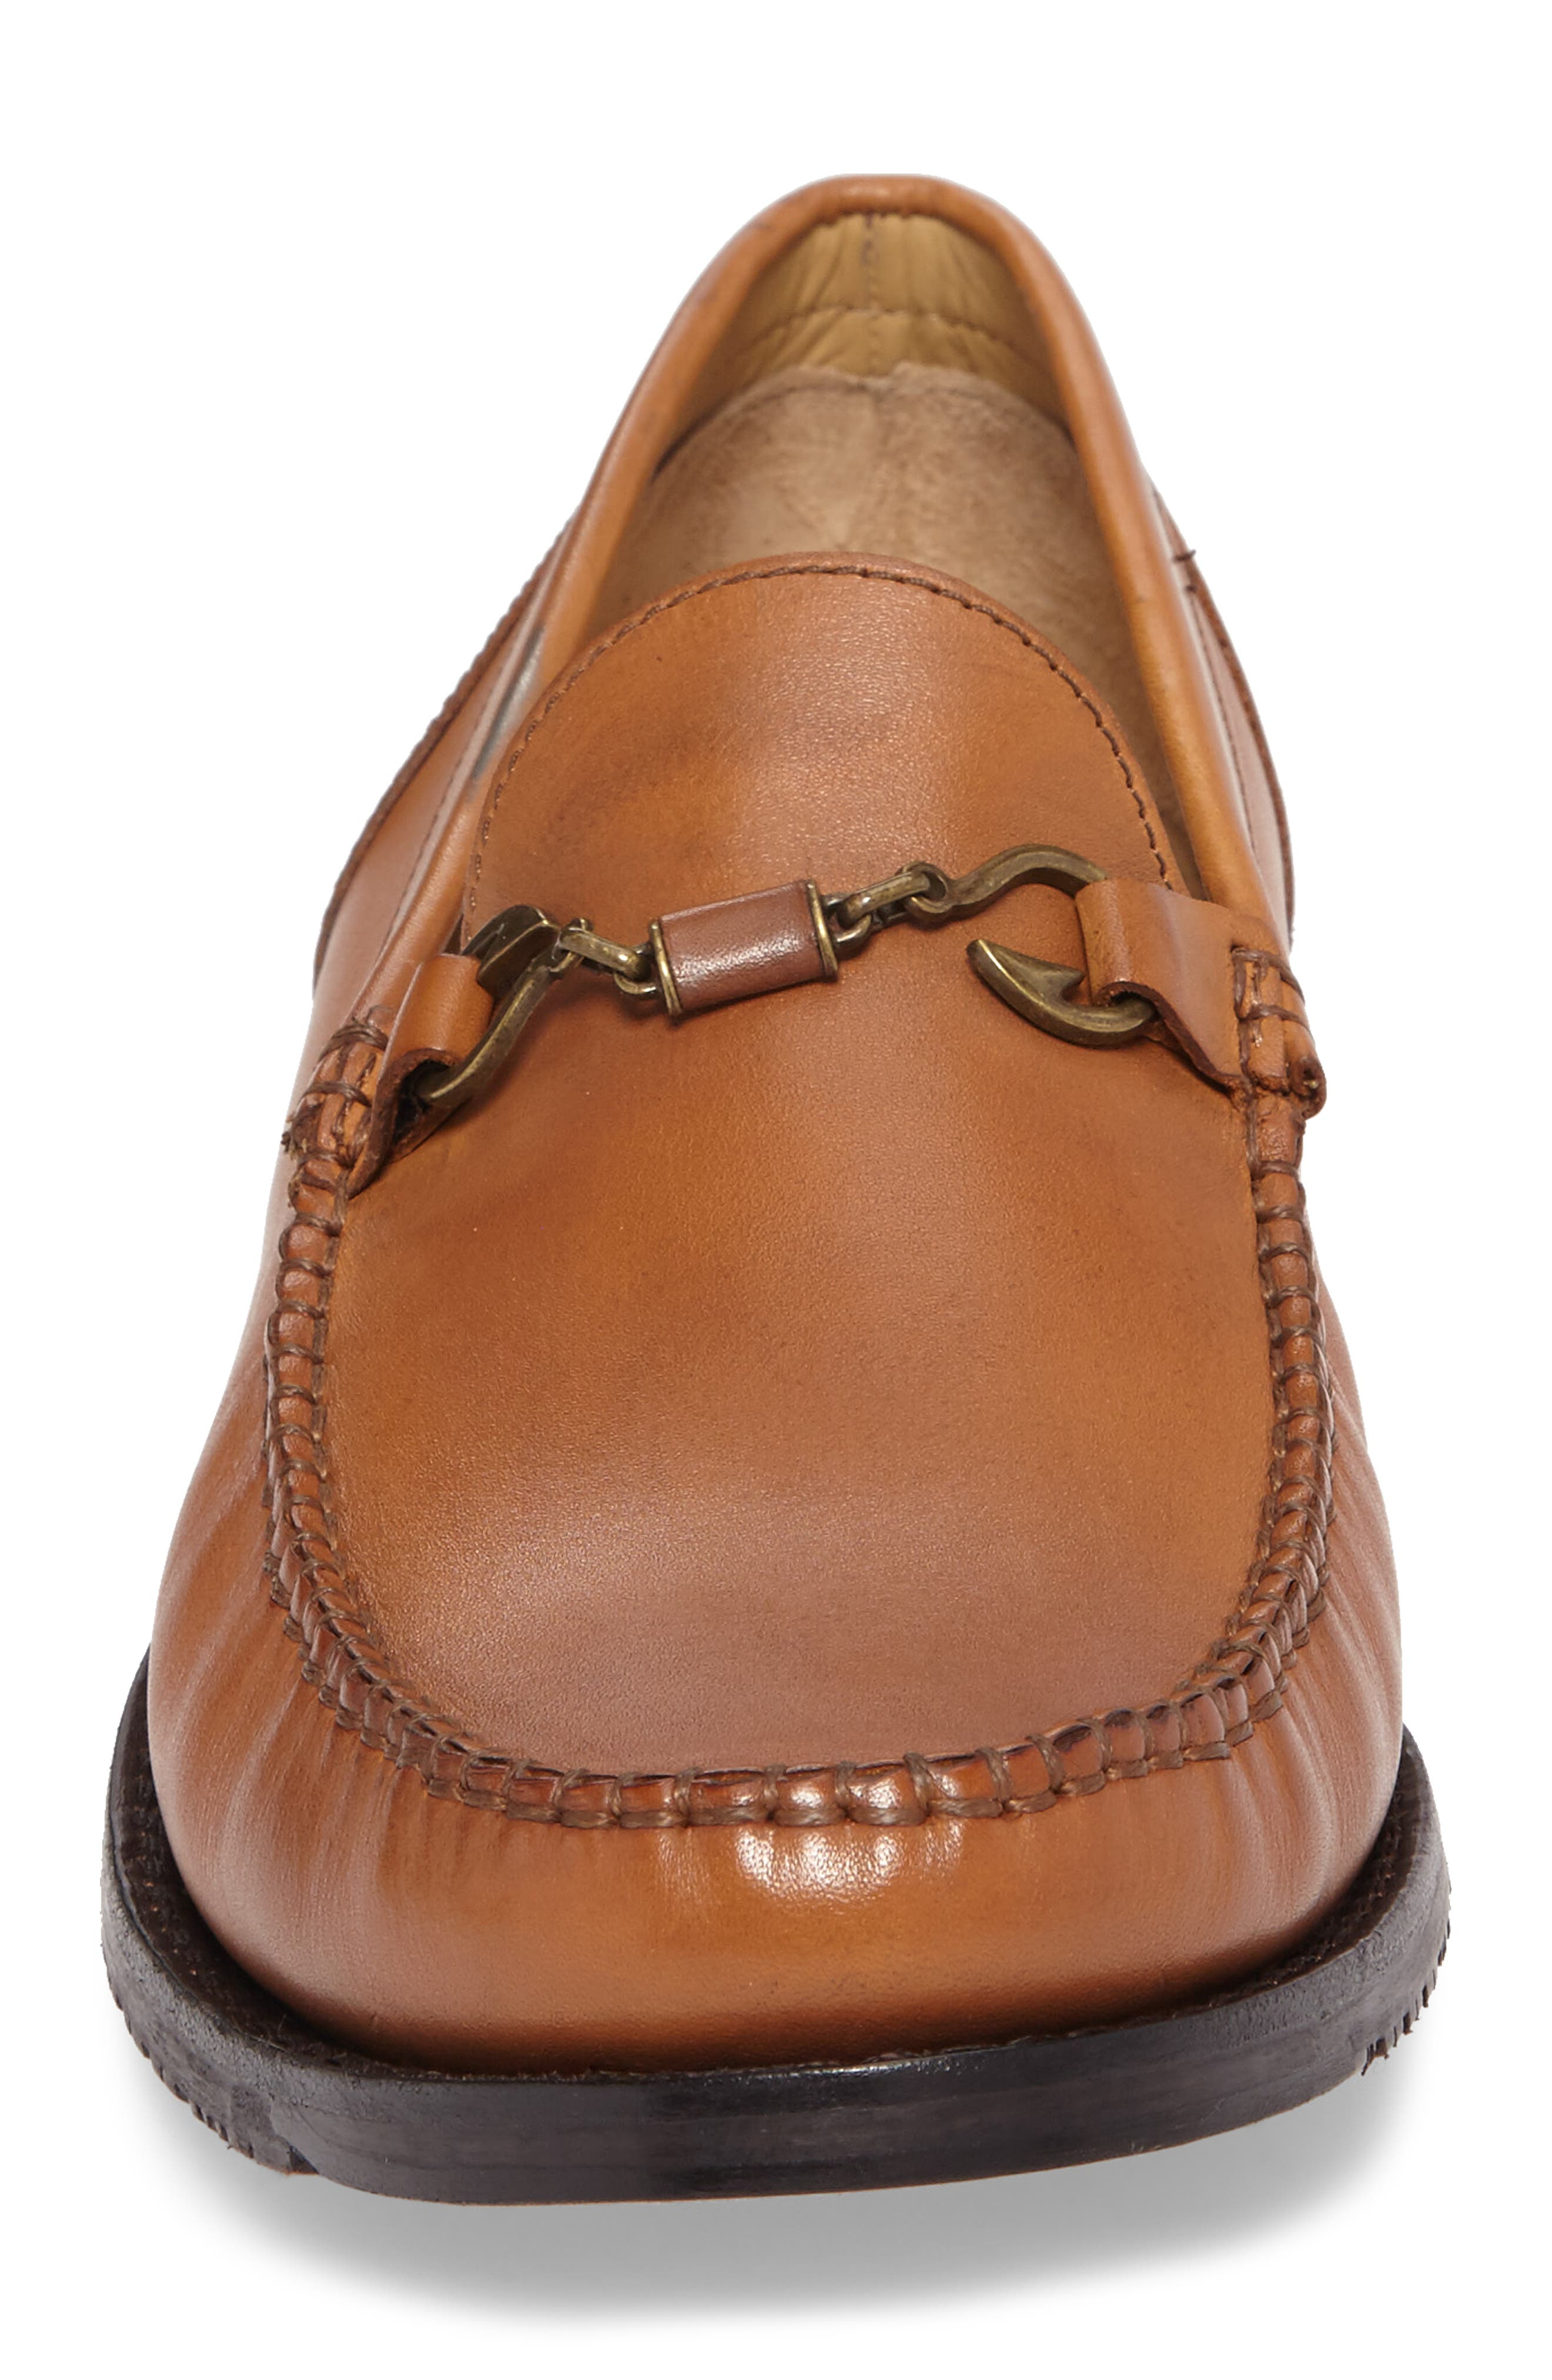 Maya Bay Bit Loafer,                             Alternate thumbnail 4, color,                             TAN LEATHER